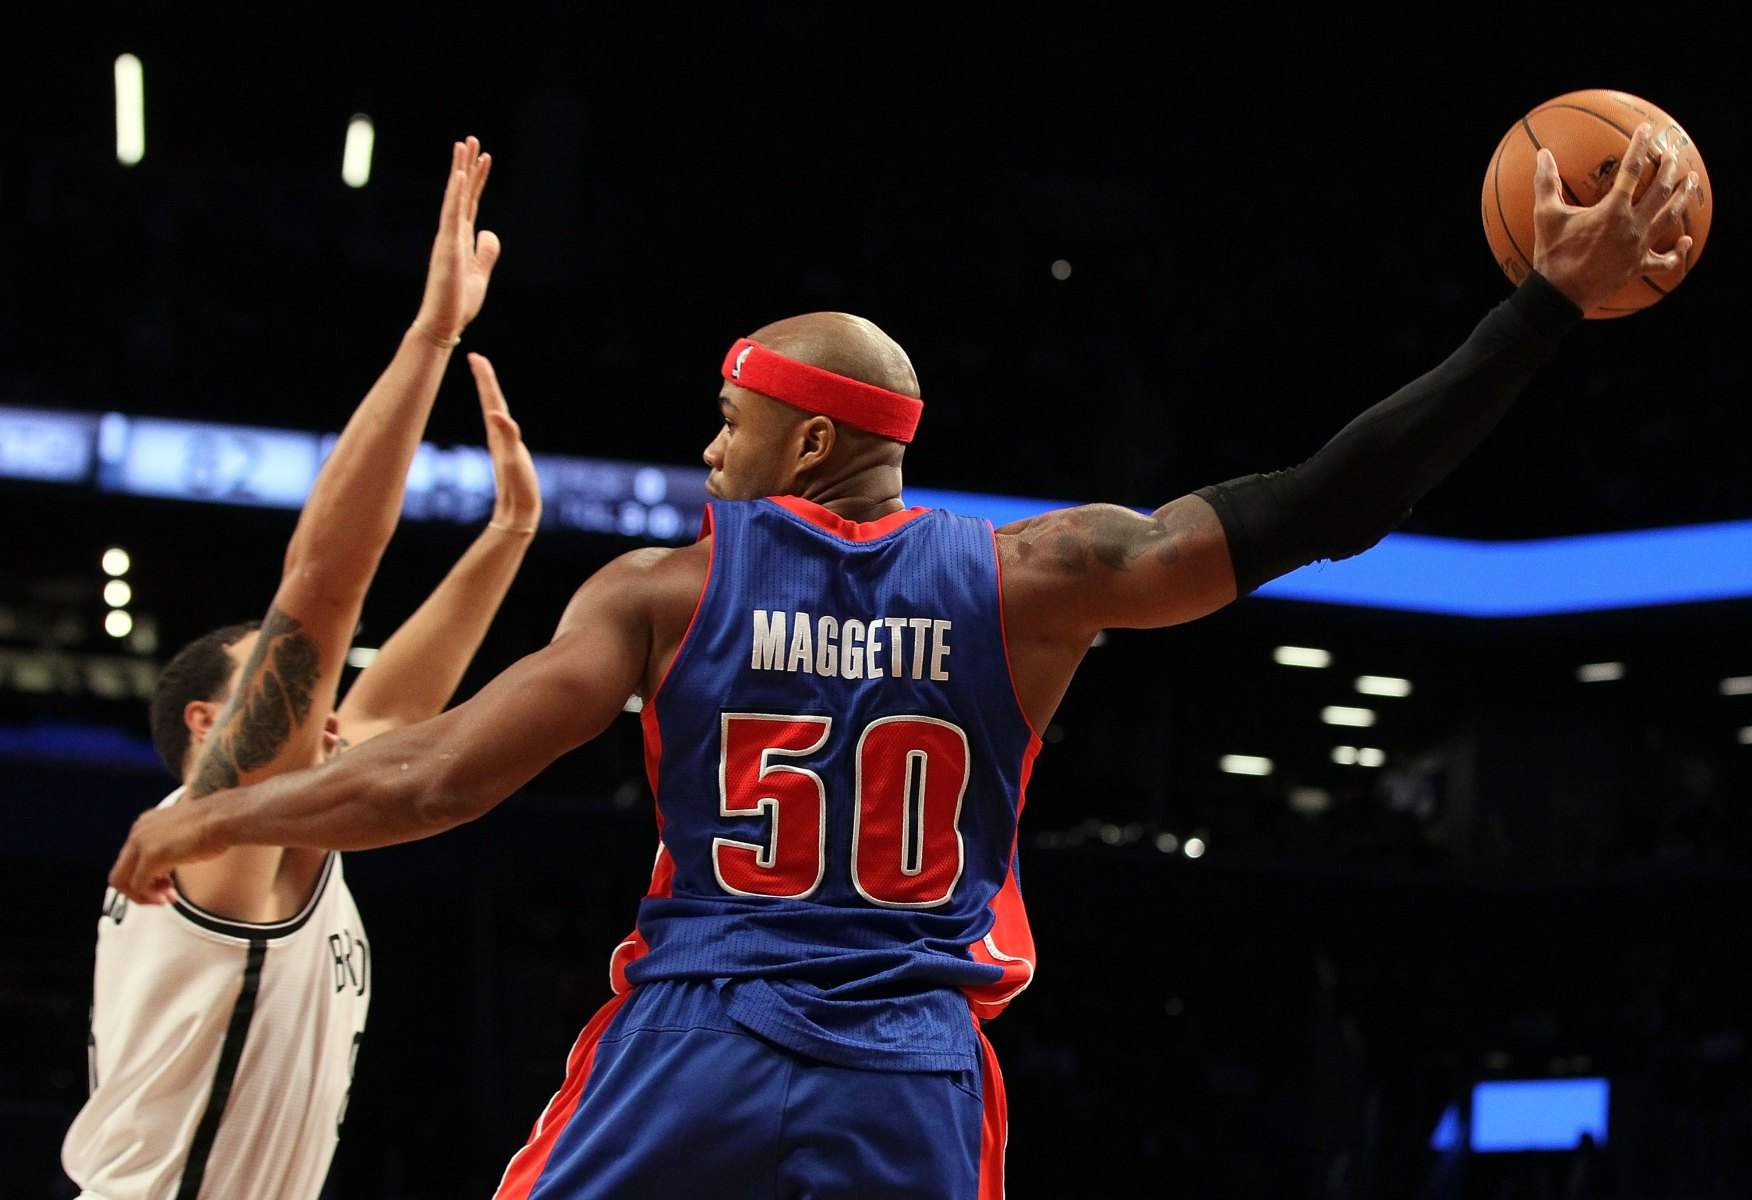 NEW YORK, NY - DECEMBER 14:  (NEW YORK DAILIES OUT)   Corey Maggette #50 of the Detroit Pistons in action against the Brooklyn Nets at Barclays Center on December 14, 2012 in the Brooklyn borough of New York City.The Nets defeated the Pistons 107-105 in double overtime. (Photo by Jim McIsaac/Getty Images)